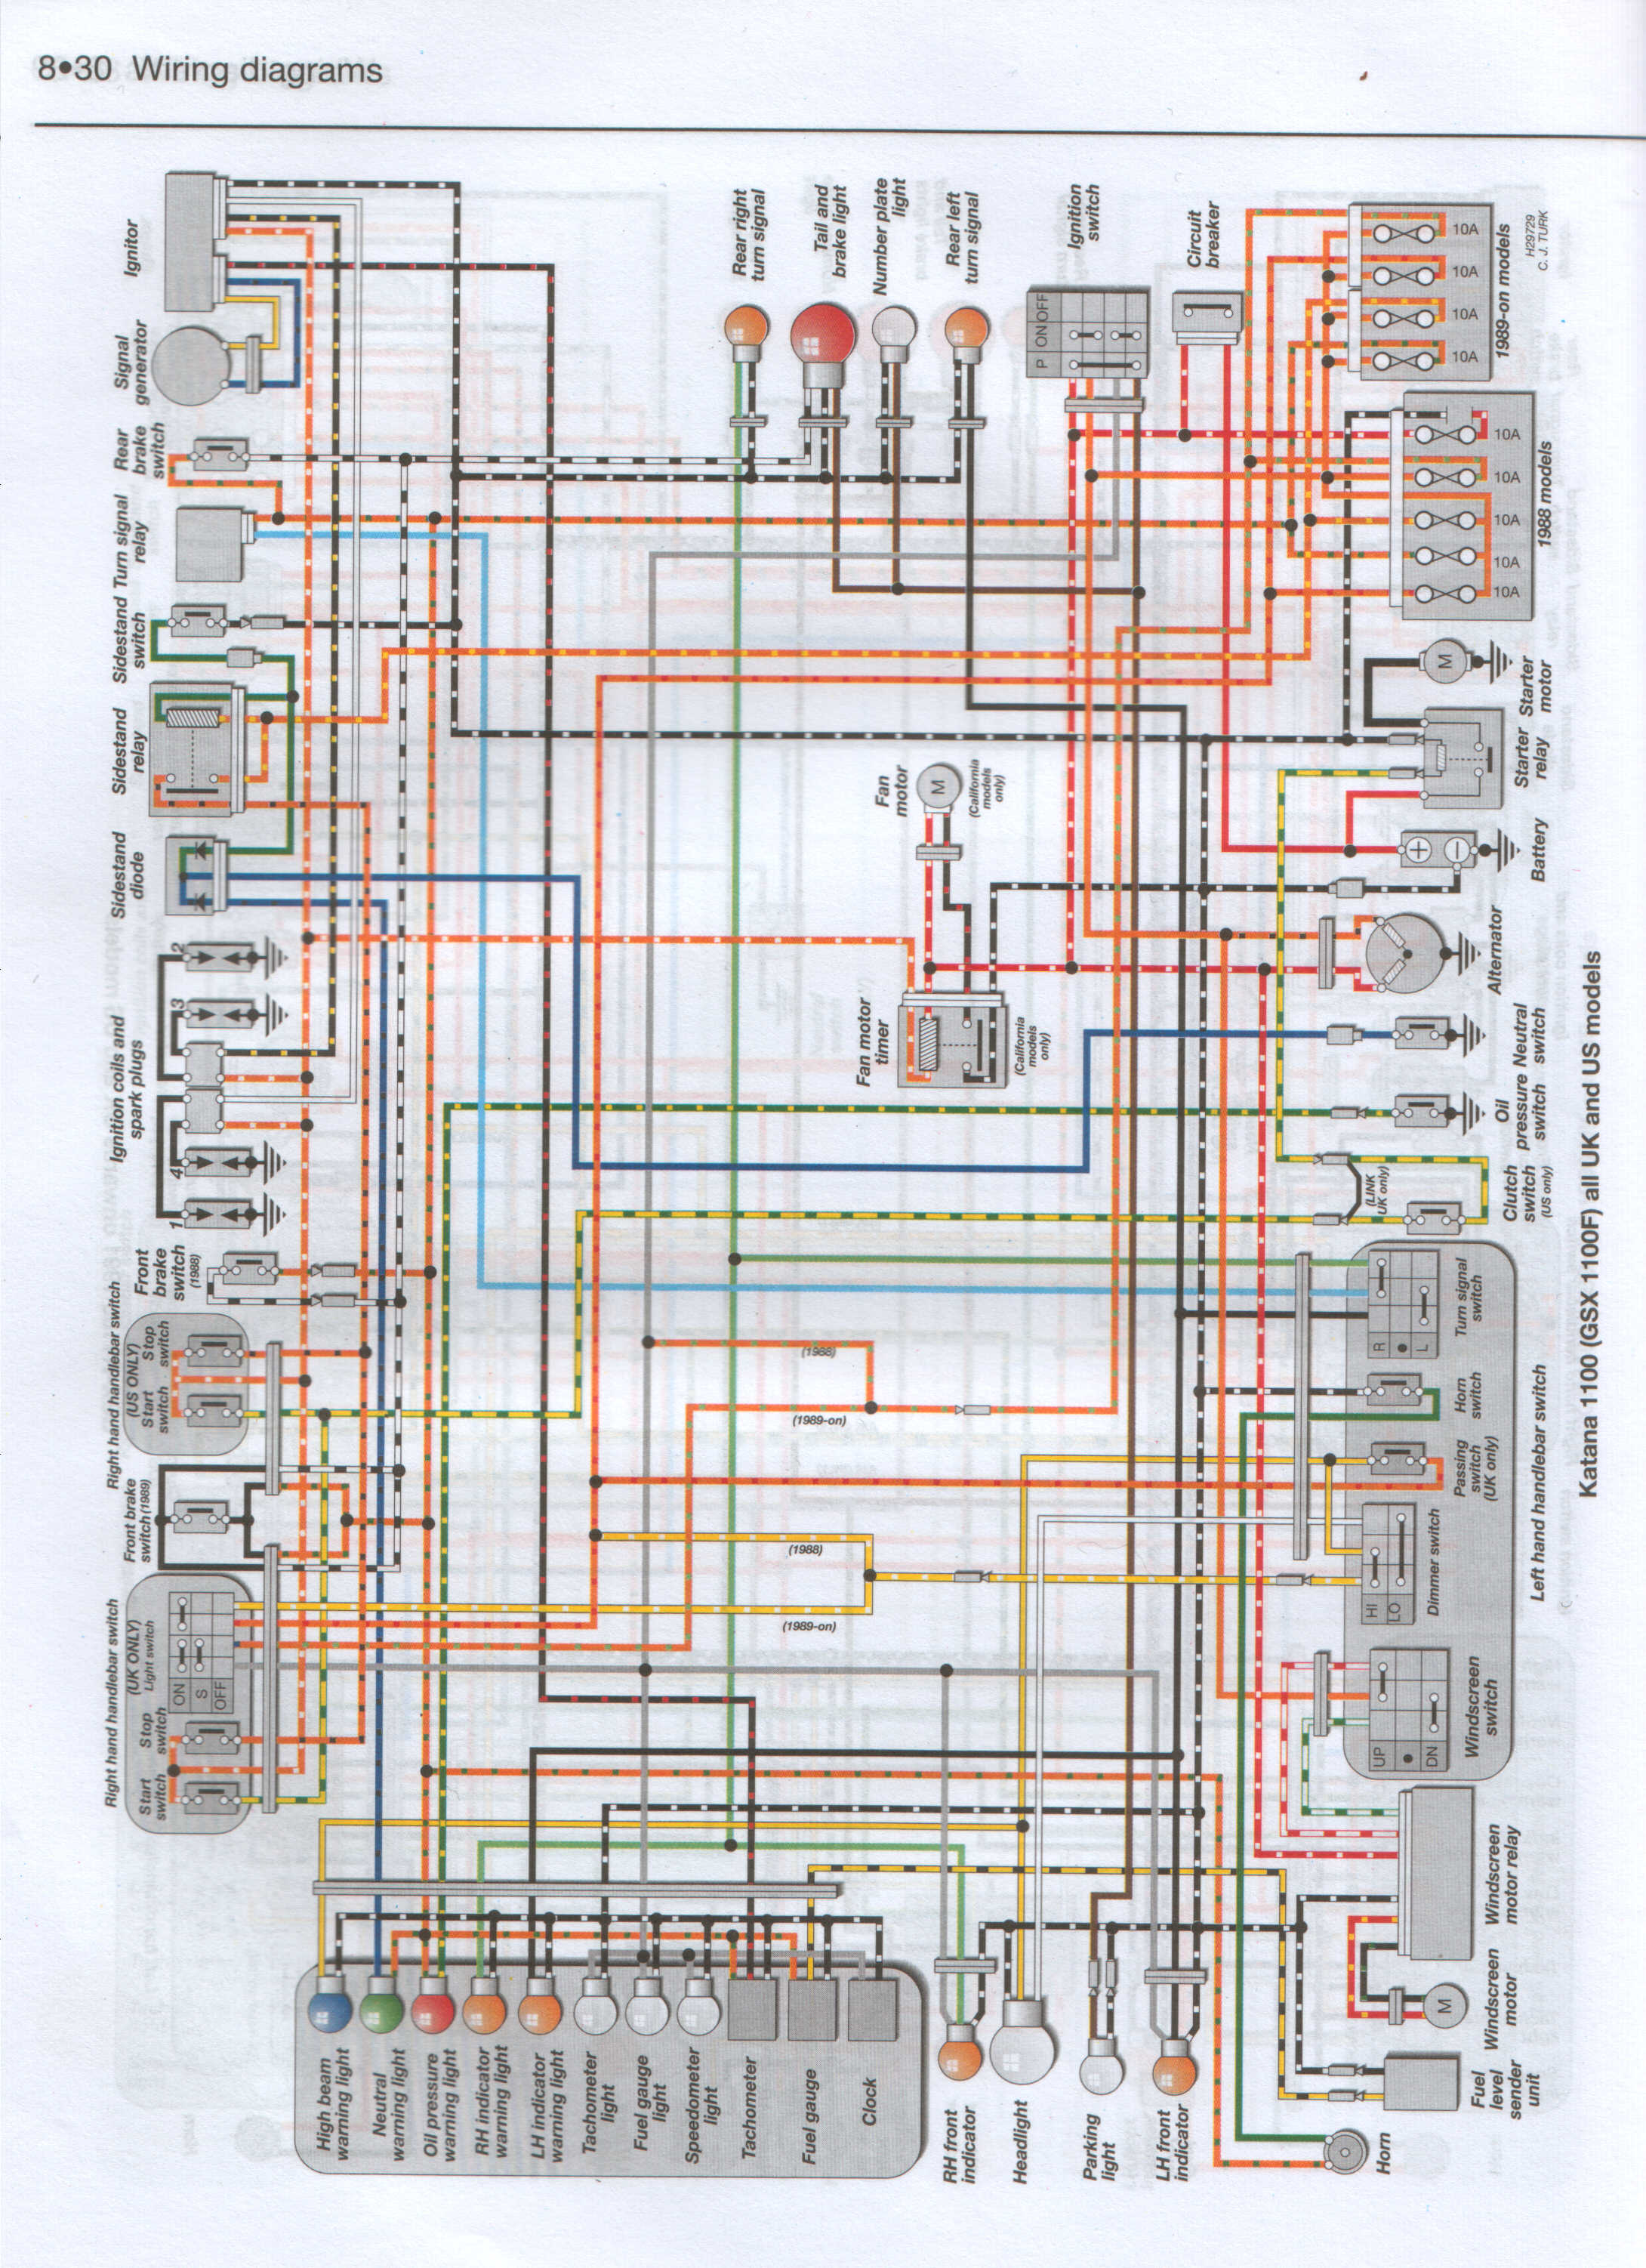 22_1275754339 gsxr 750 wiring diagram efcaviation com 2004 suzuki gsxr 600 wiring diagram at bayanpartner.co